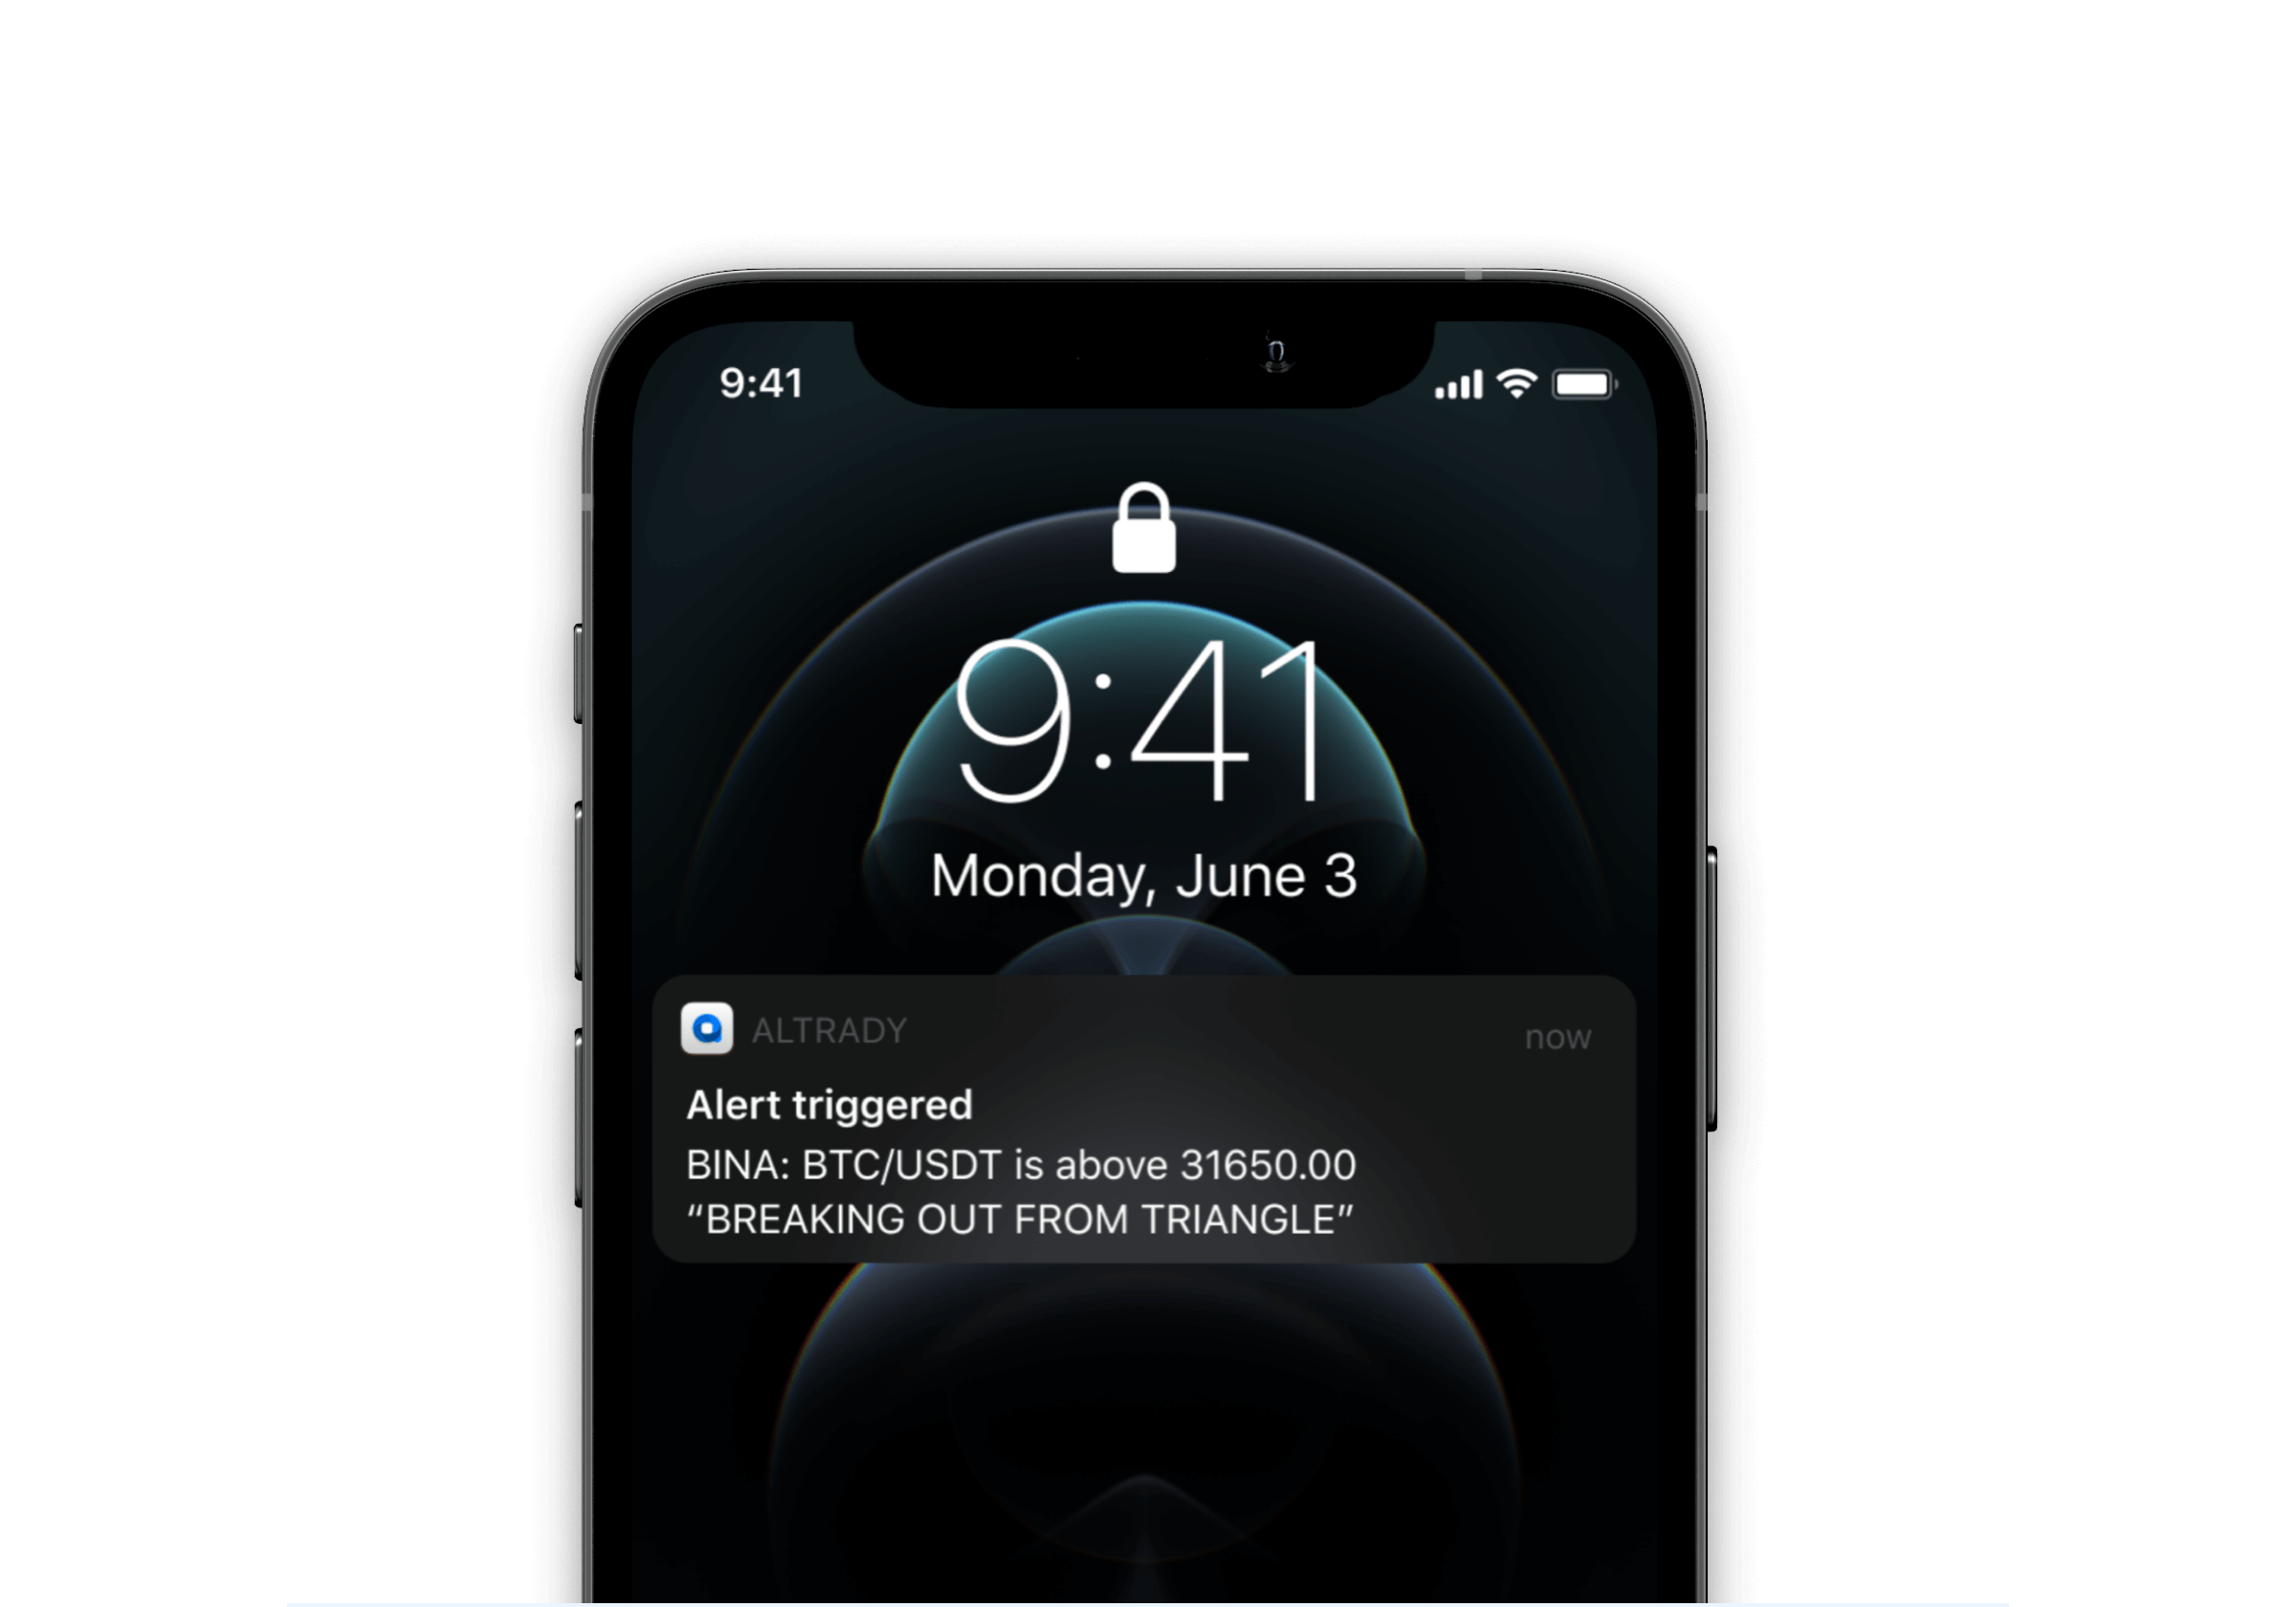 Receive mobile notifications about the alerts